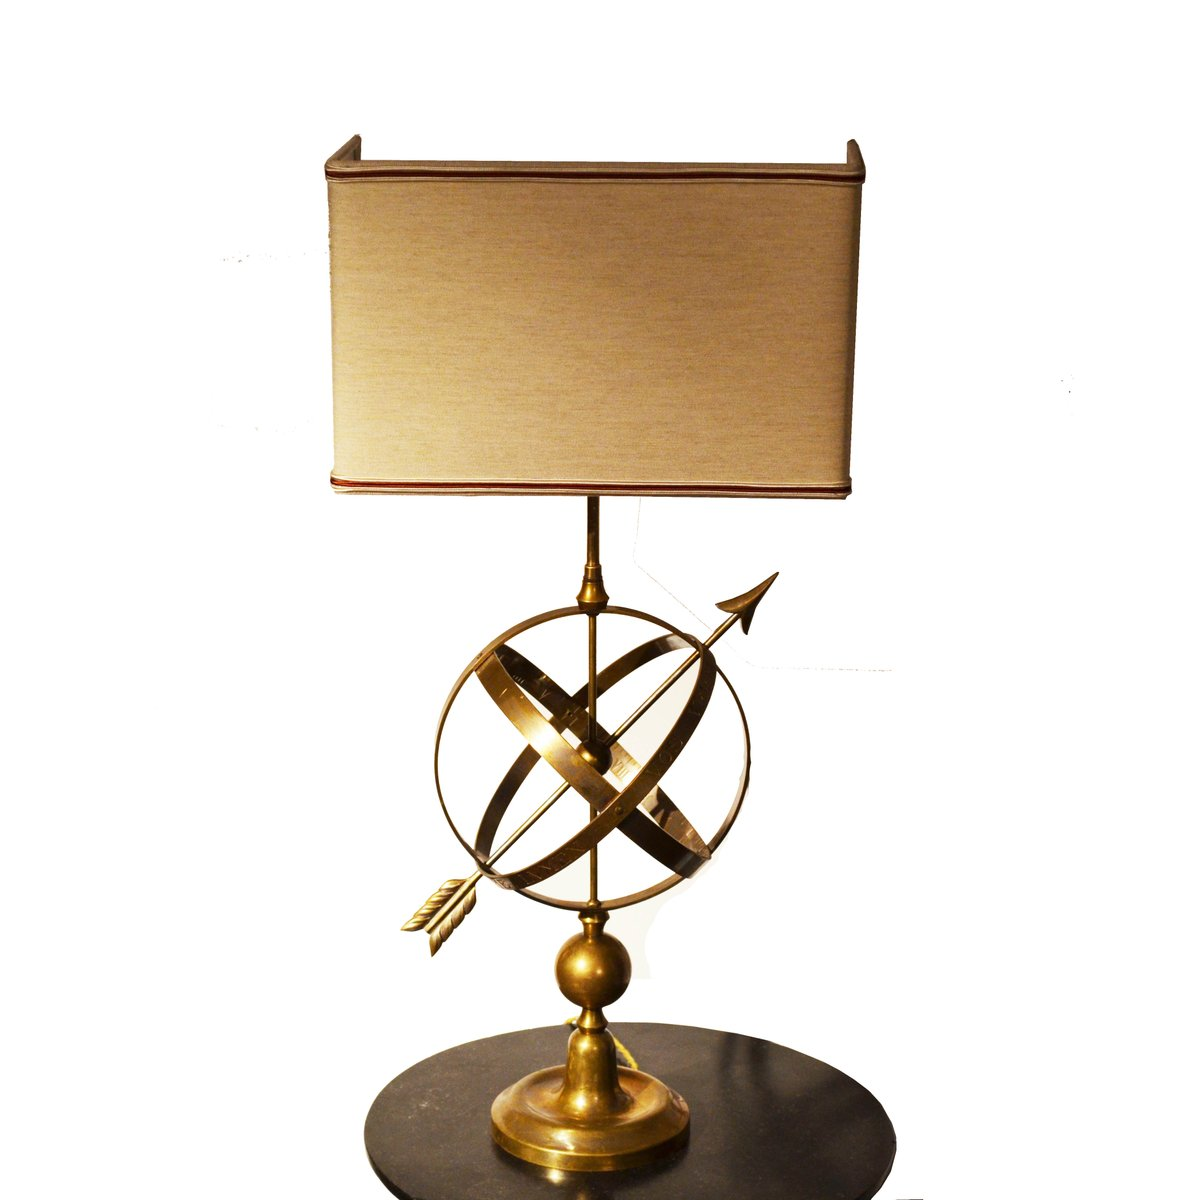 Vintage Sundial-Shaped Brass Lamp for sale at Pamono